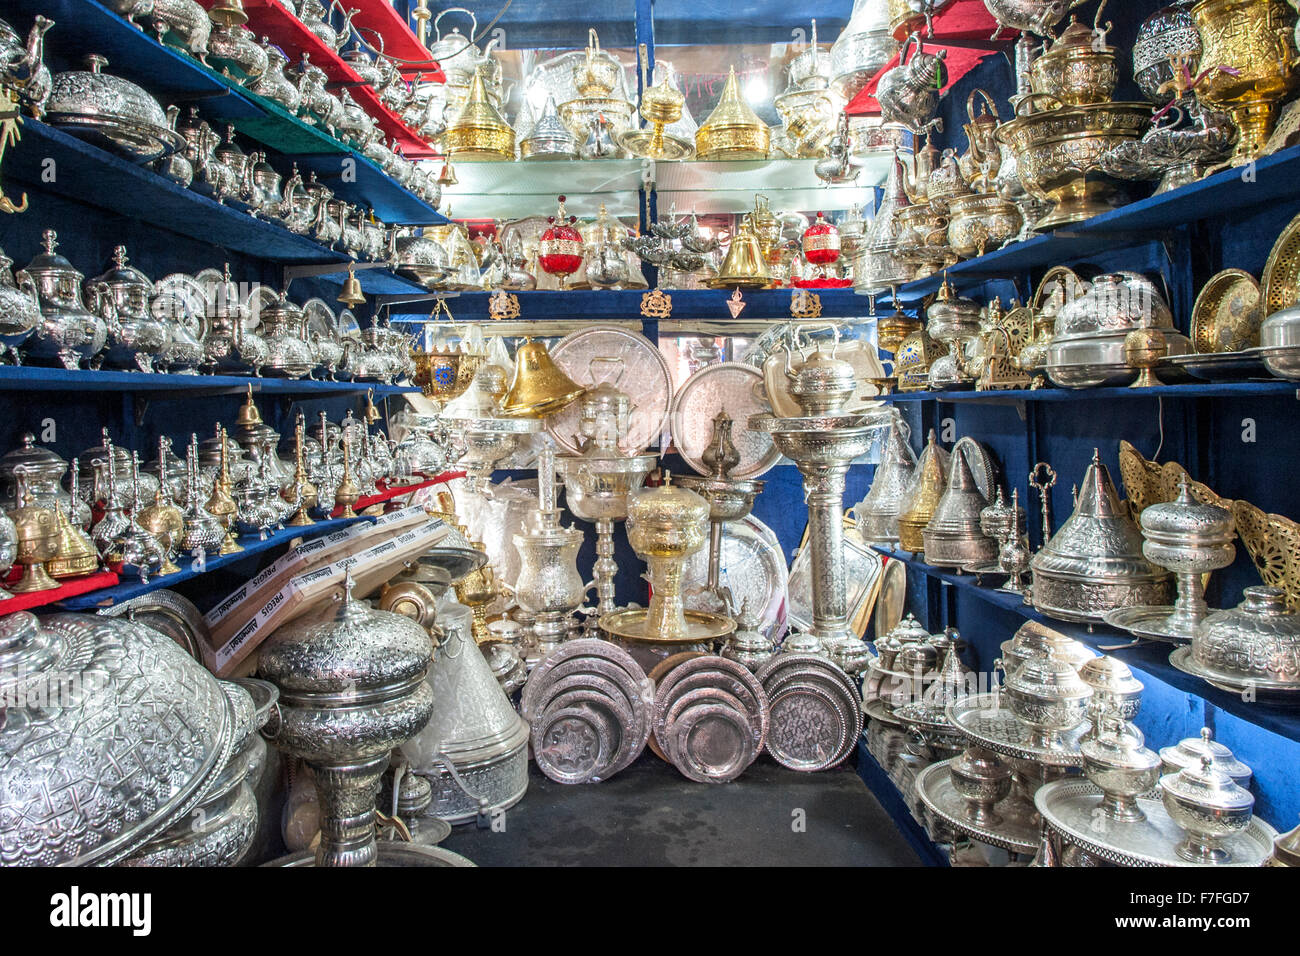 Silverware for sale in the souk in Marrakech, Morocco. - Stock Image